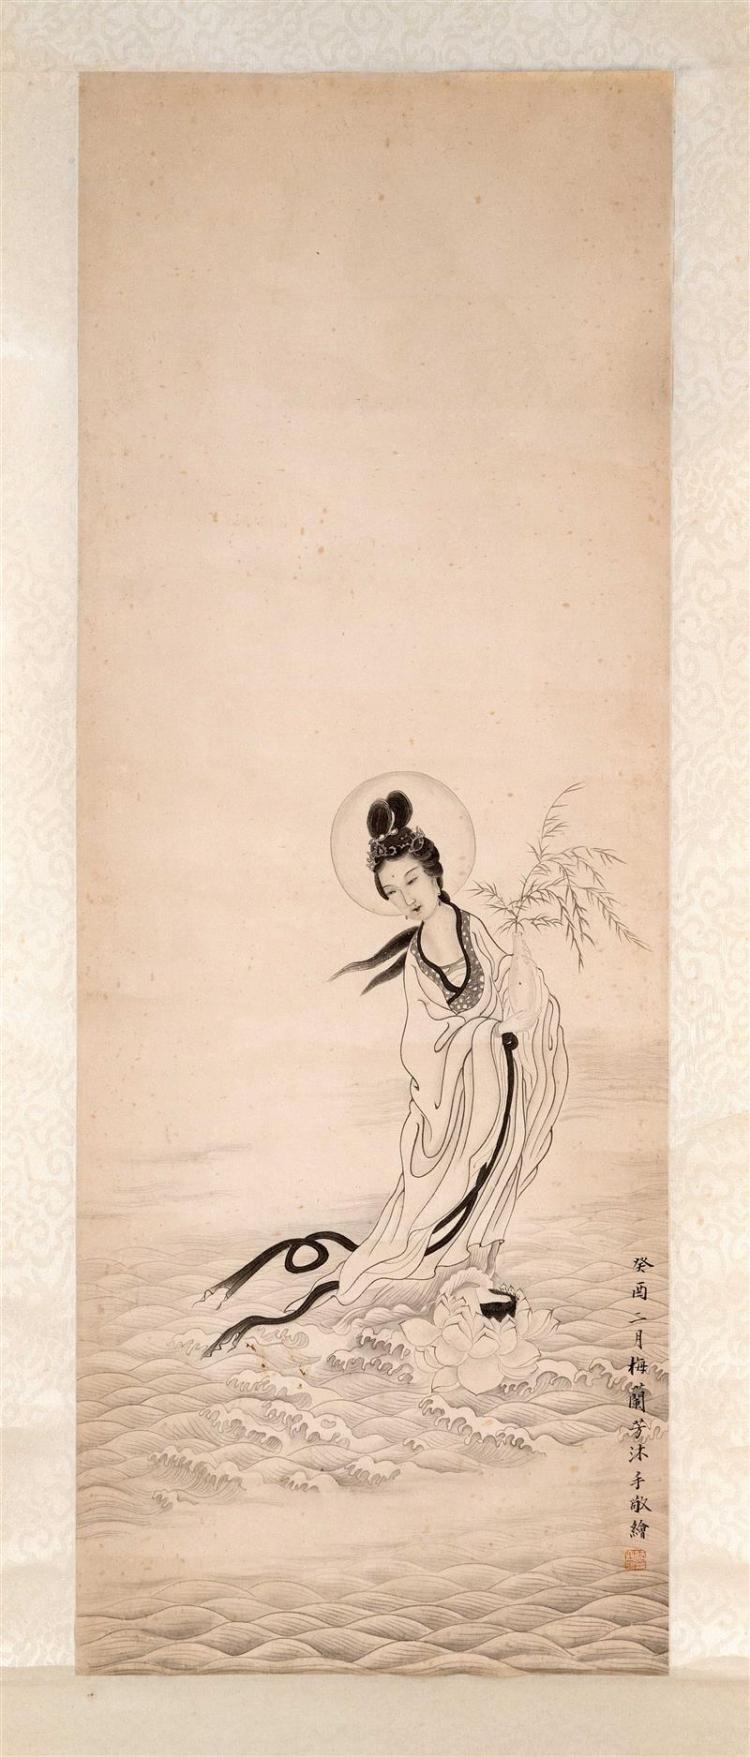 SCROLL PAINTING ON PAPER Attributed to Mei Lanfang. Depicting a mythological female figure standing on a lotus blossom. Signed and s...